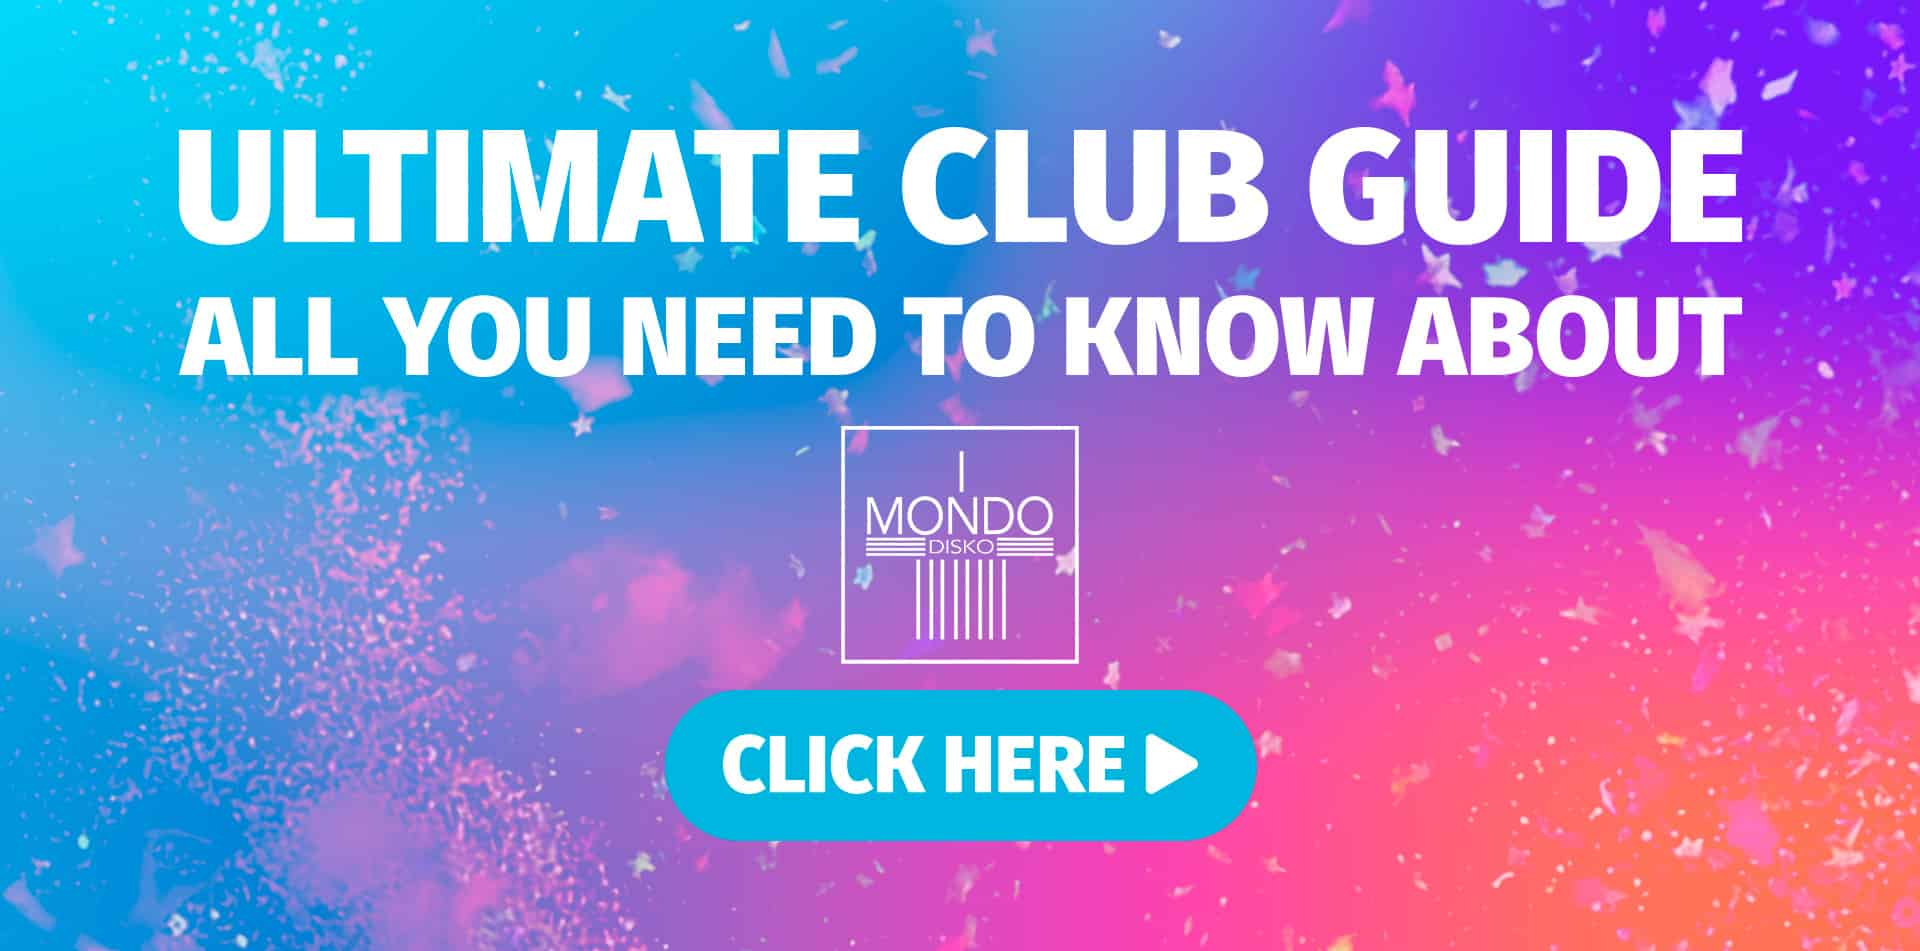 Ultimate Club Guide - Mondo Disko